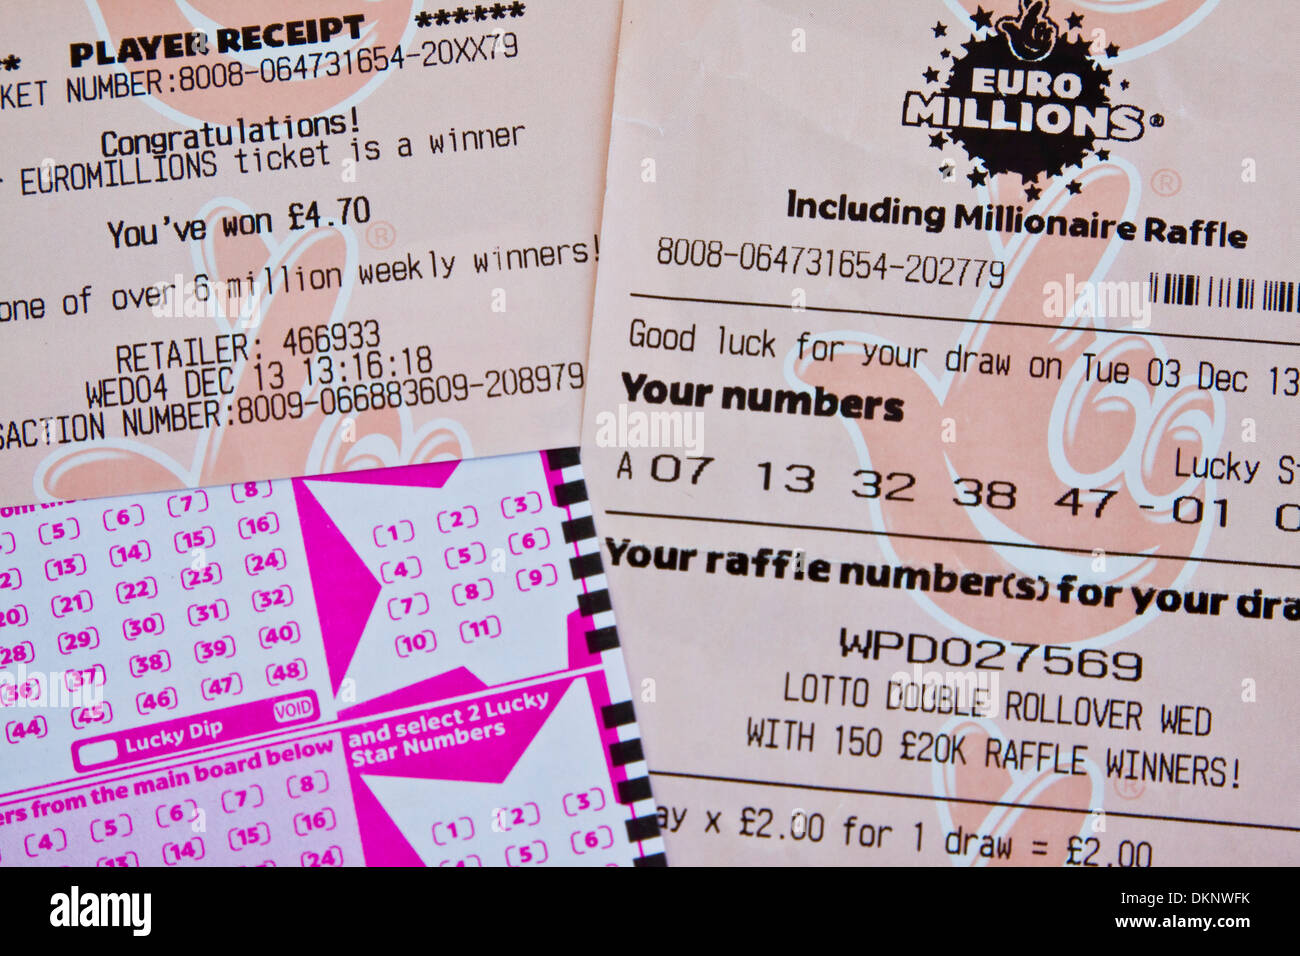 Lotto Euromillions National Lottery Euro Millions Ticket Game Slip And Winning